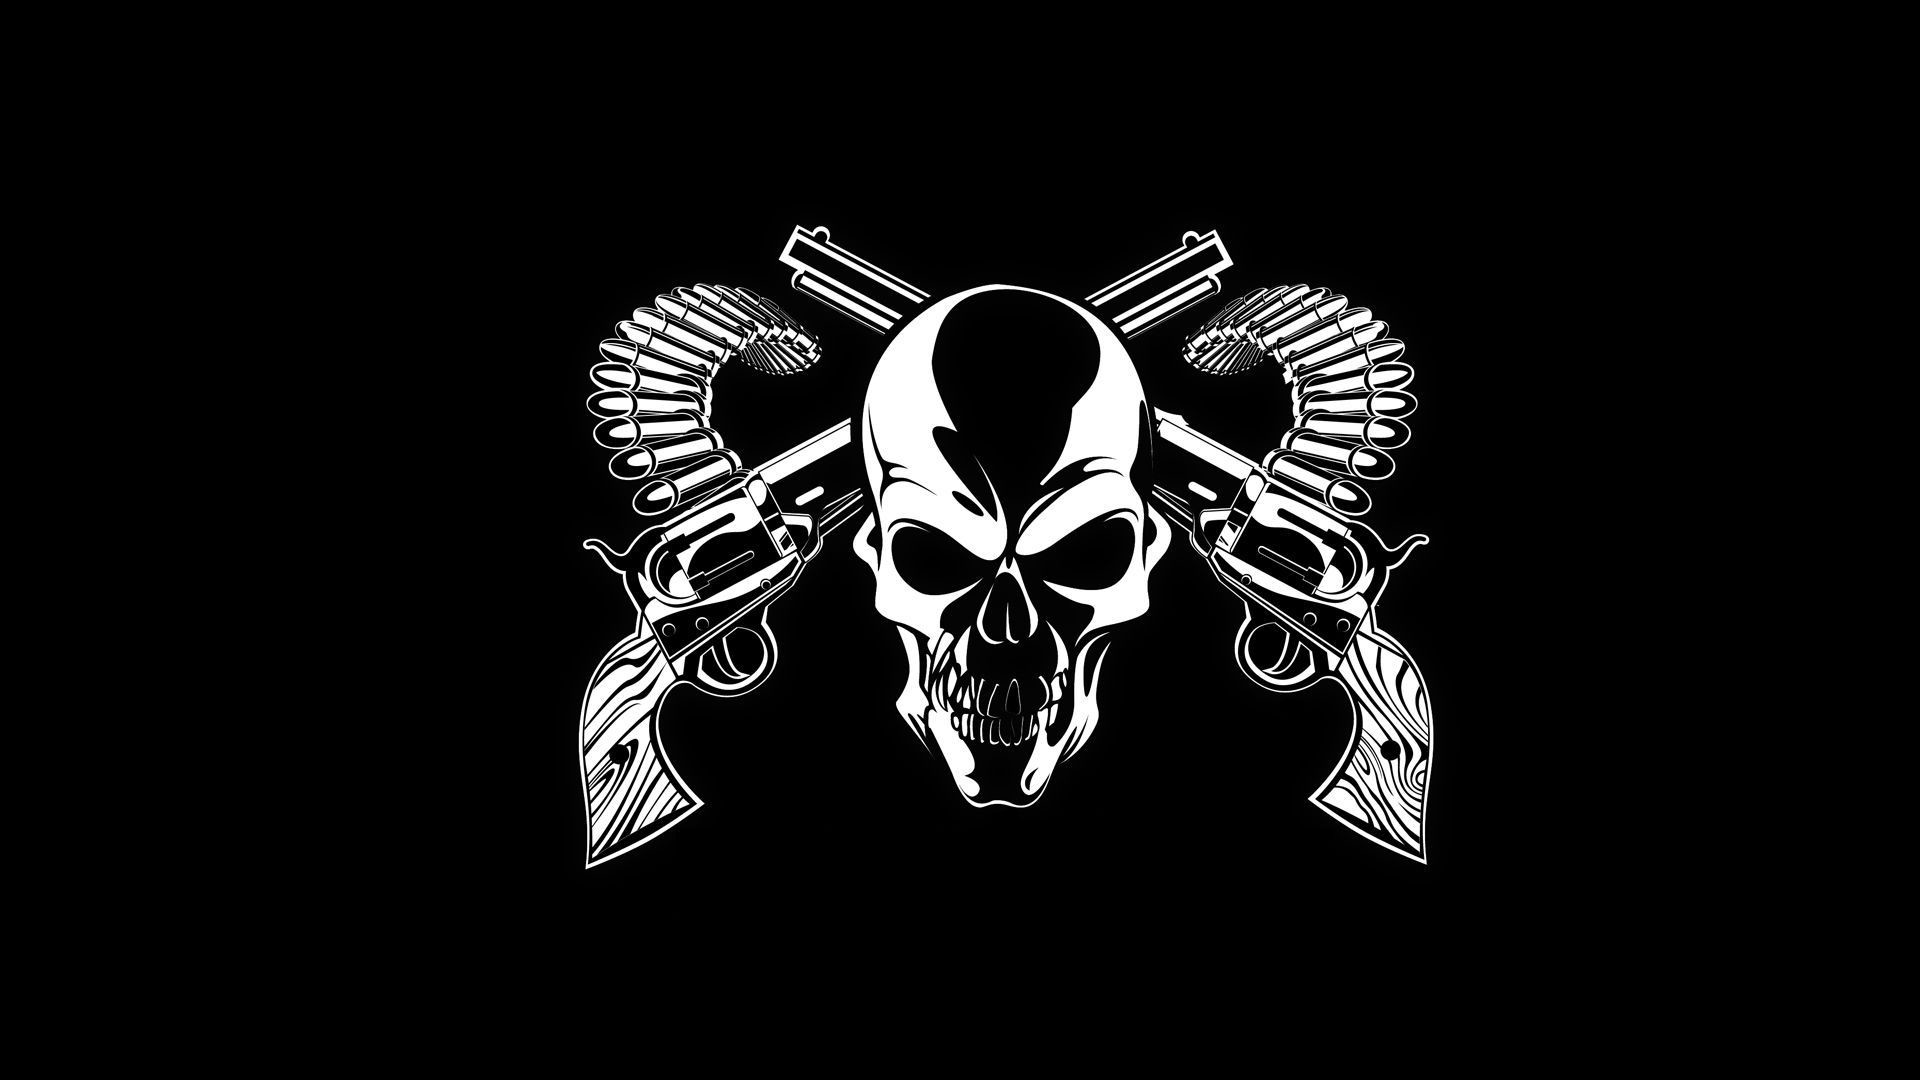 Skull Wallpapers Free Download – HD Wallpapers , Picture ,Background  ,Photos ,Image – Free HQ Wallpaper – HD Wallpaper PC   Pinterest   Skull  wallpaper, …